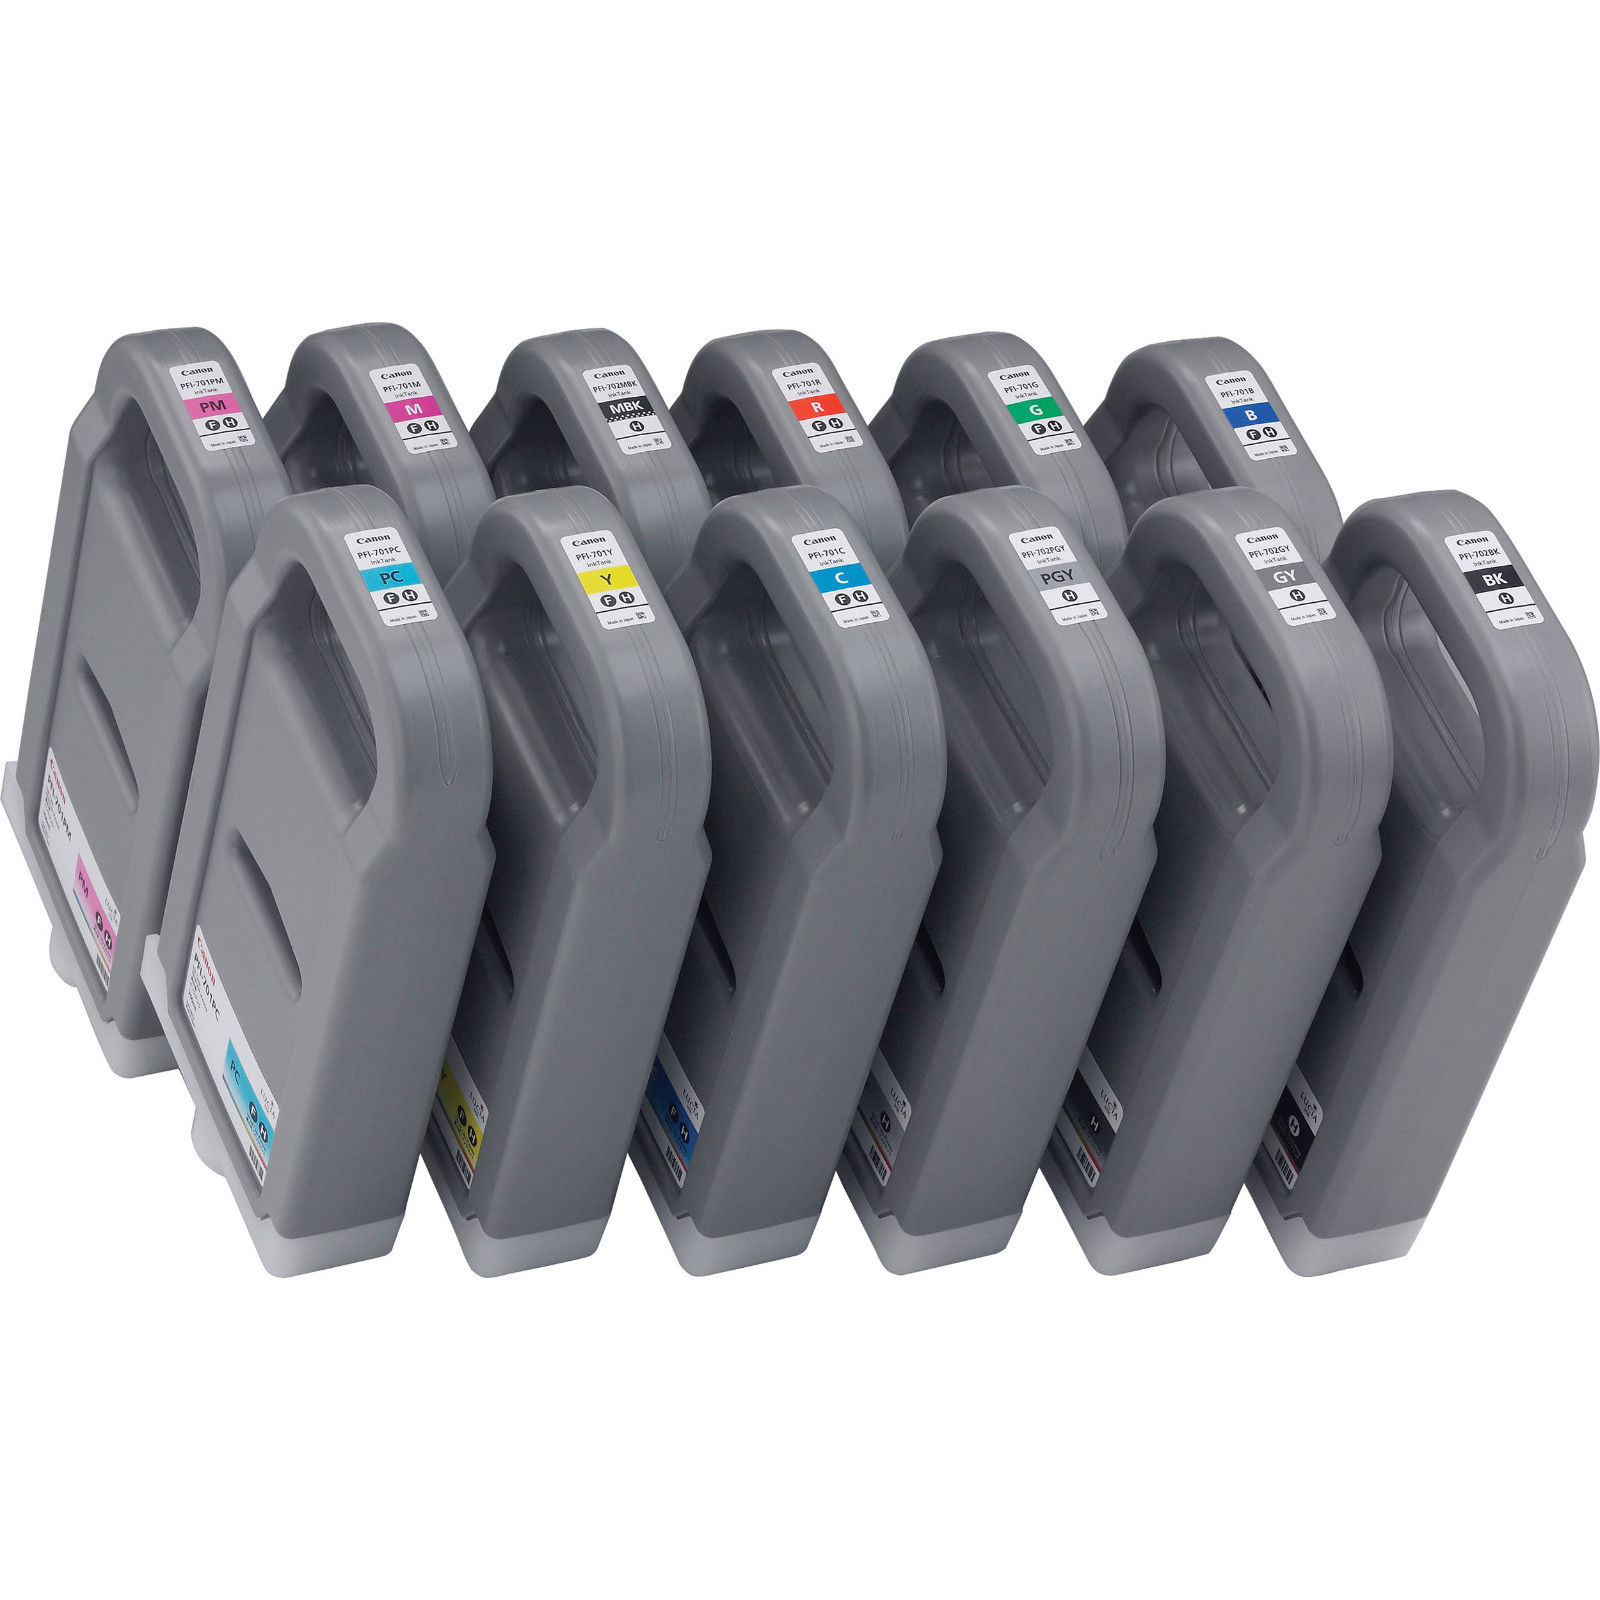 Original Canon PFI-701 Multipack Set Of 12 High Capacity Ink Cartridges (PFI-701BK MBK/C/M/Y/PC/PM/GY/PGY/G/B/R)